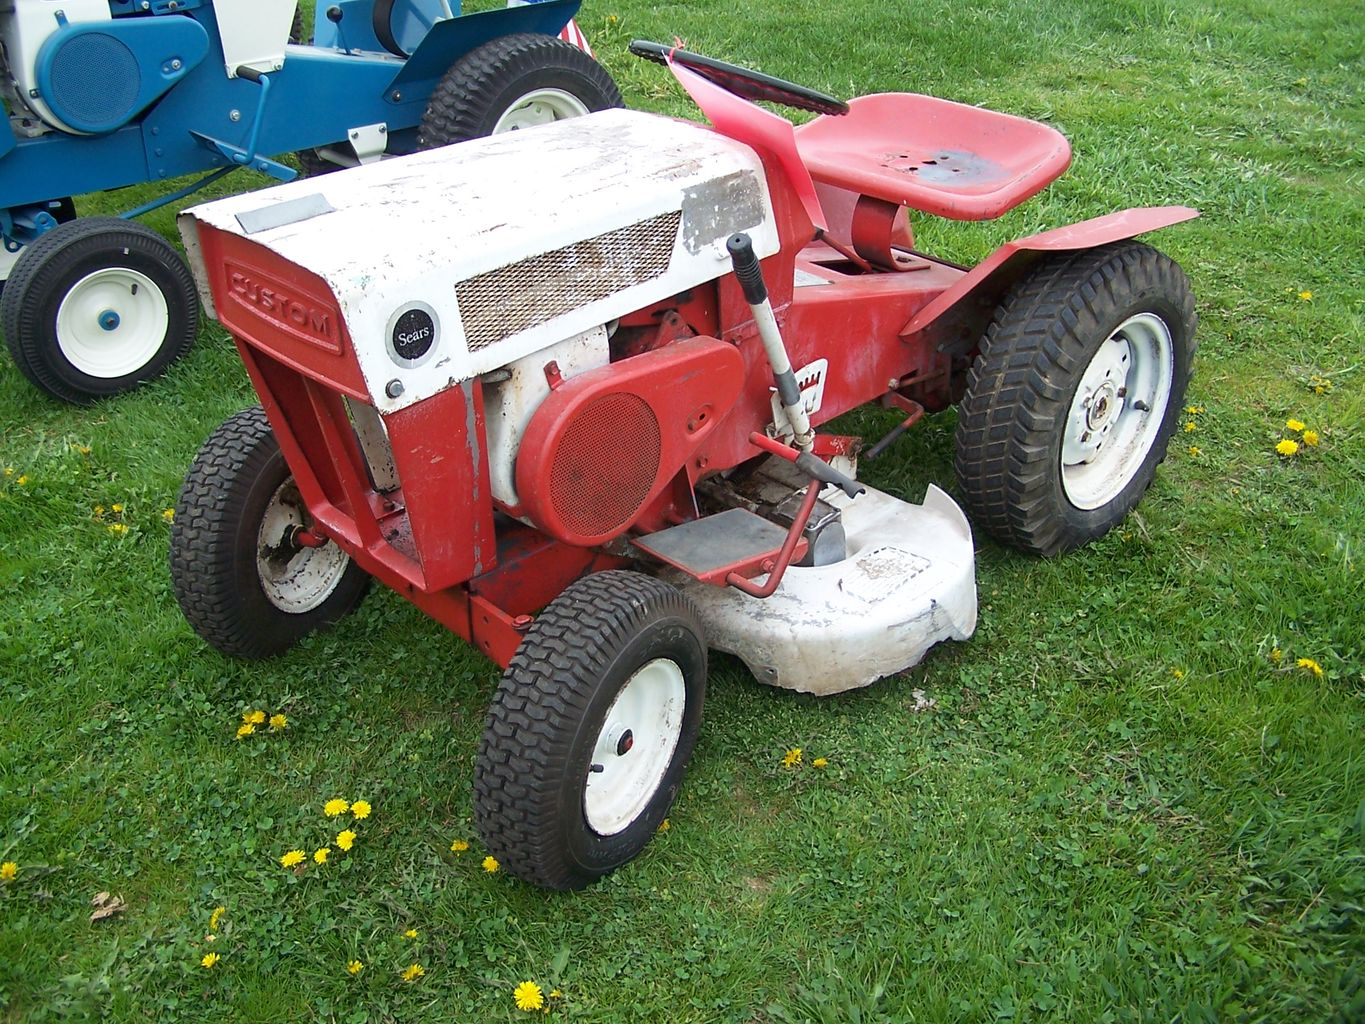 Old Craftsman Garden Tractors : My sears garden tractor loader project is fully functional